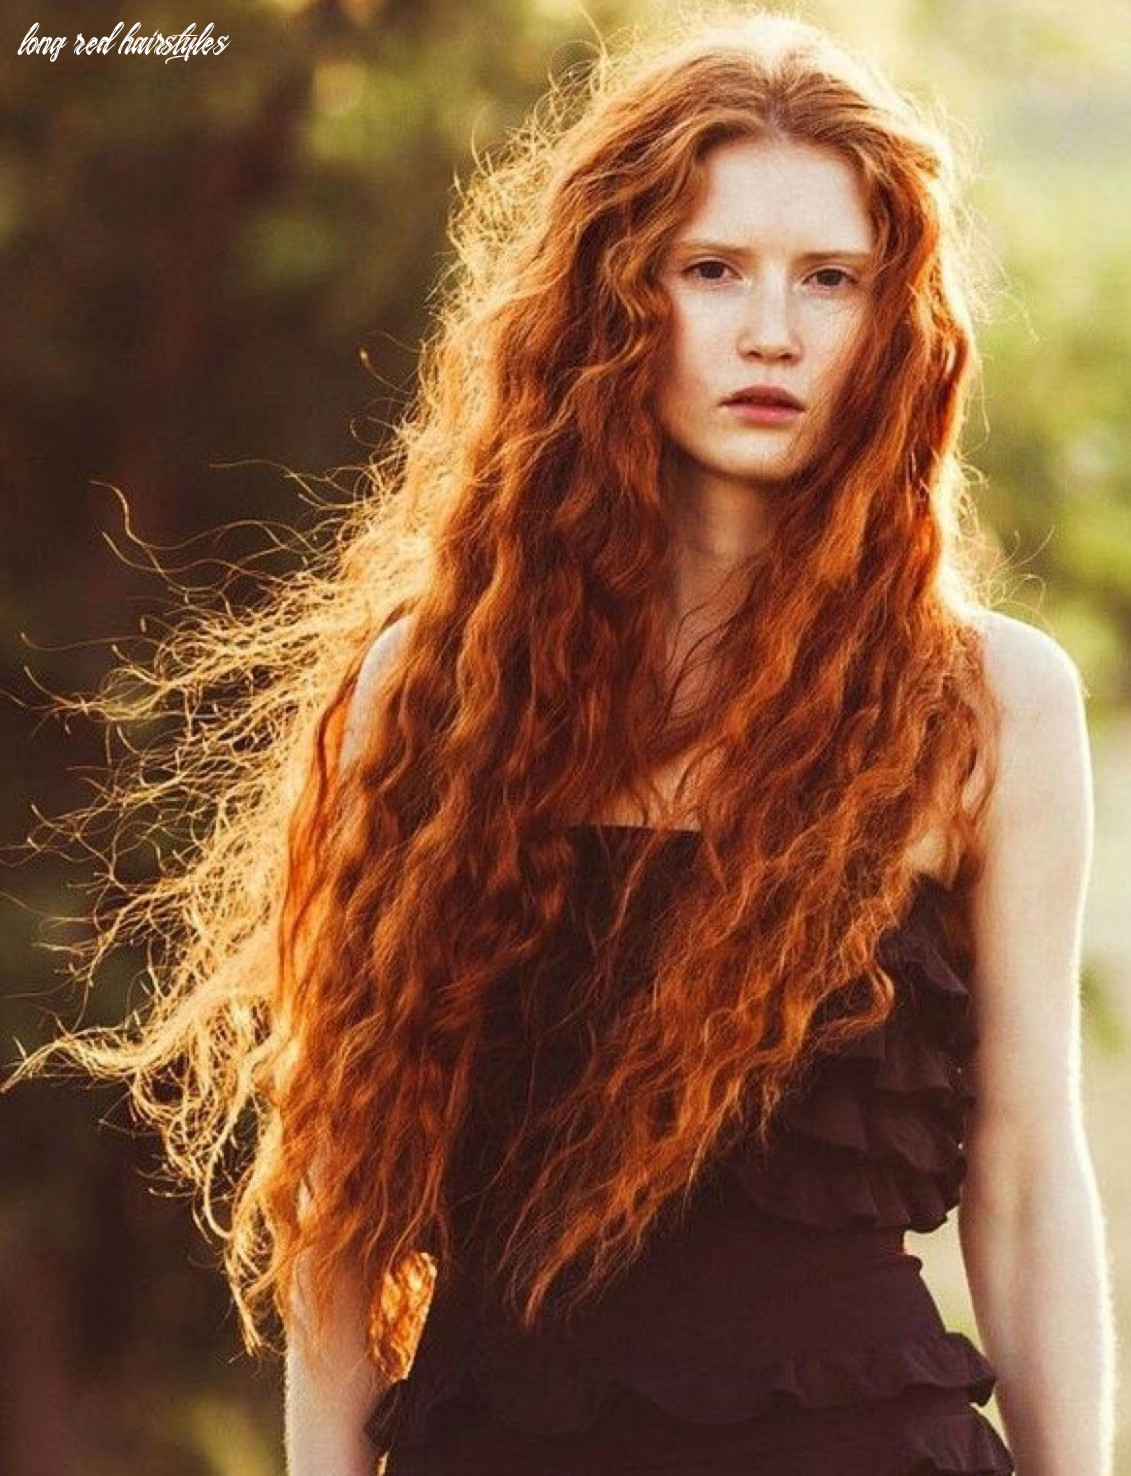 Irish beauty | long hair styles, natural red hair, long red hair long red hairstyles